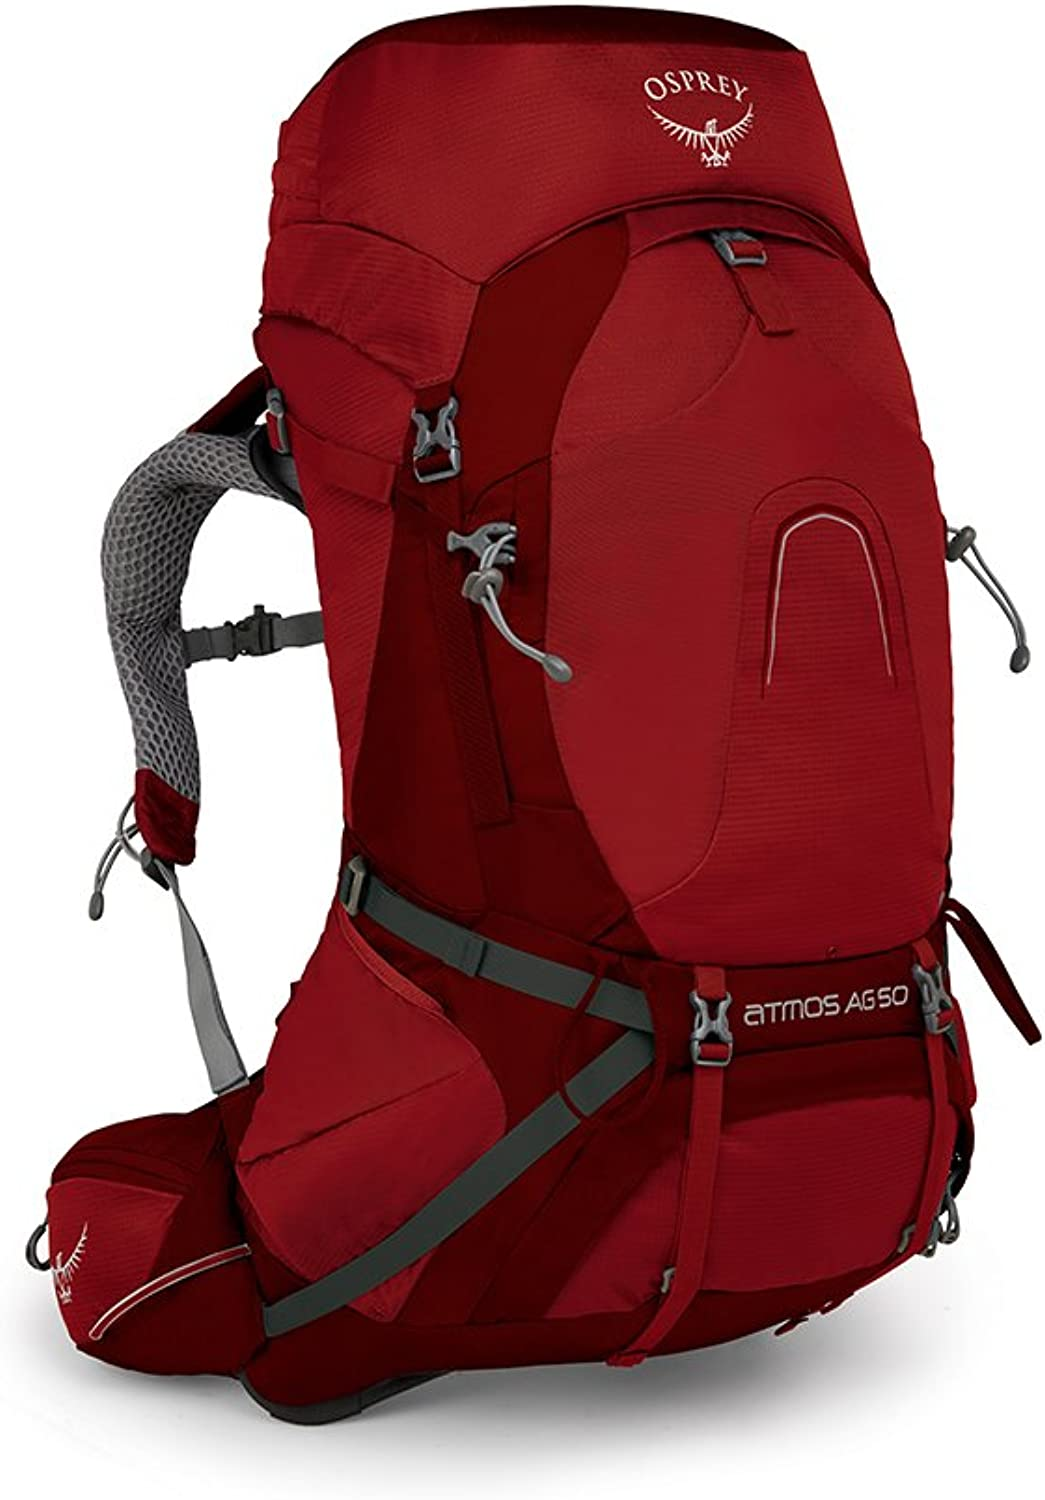 Osprey Packs Osprey Pack Atmos Ag 50 Backpack, Rigby Red, Small